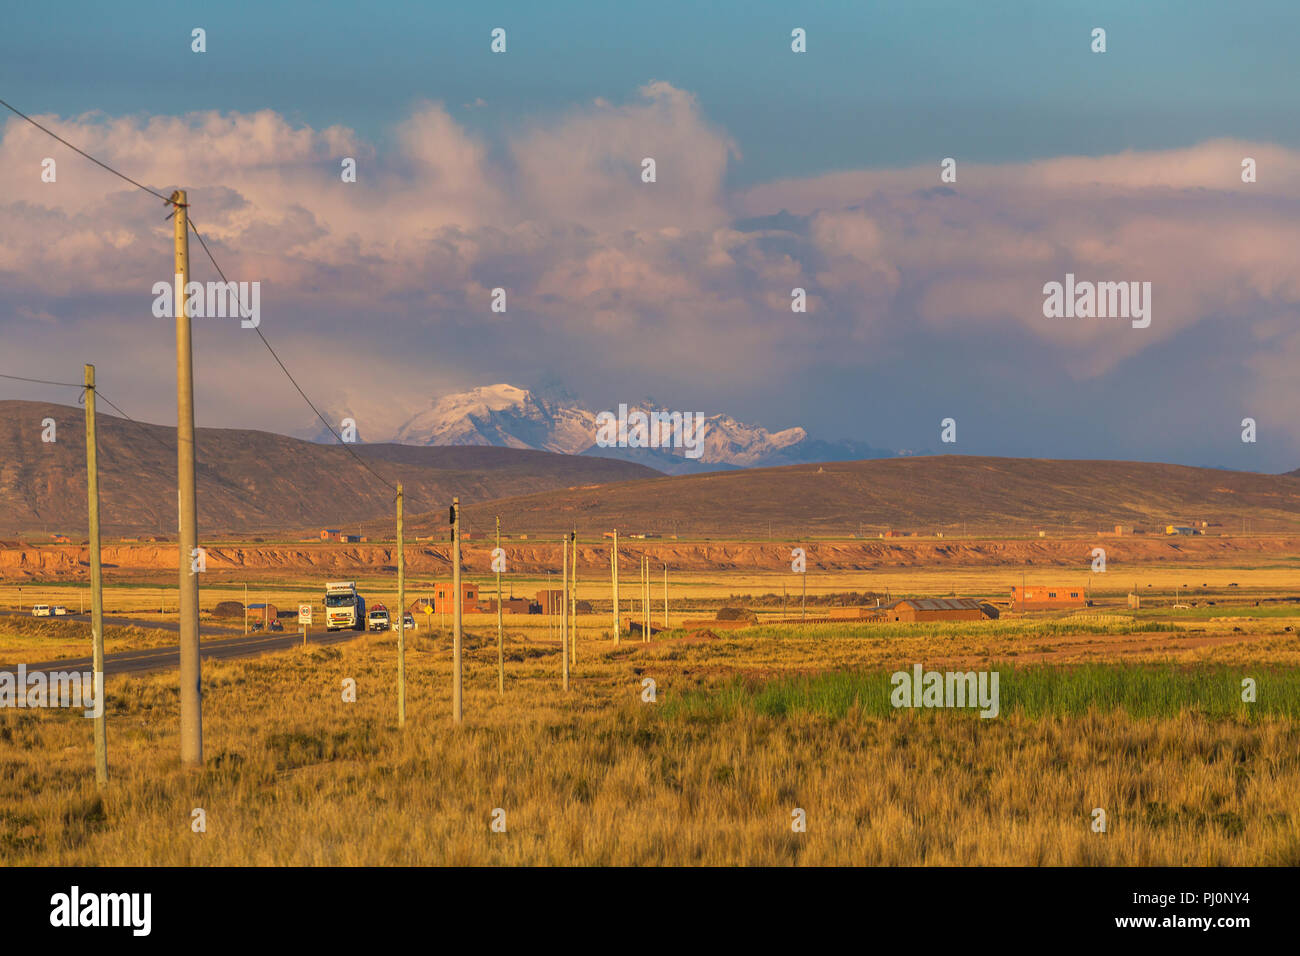 Illimani volcano, Aymara, Cordillera Real, La Paz department, Bolivia Stock Photo